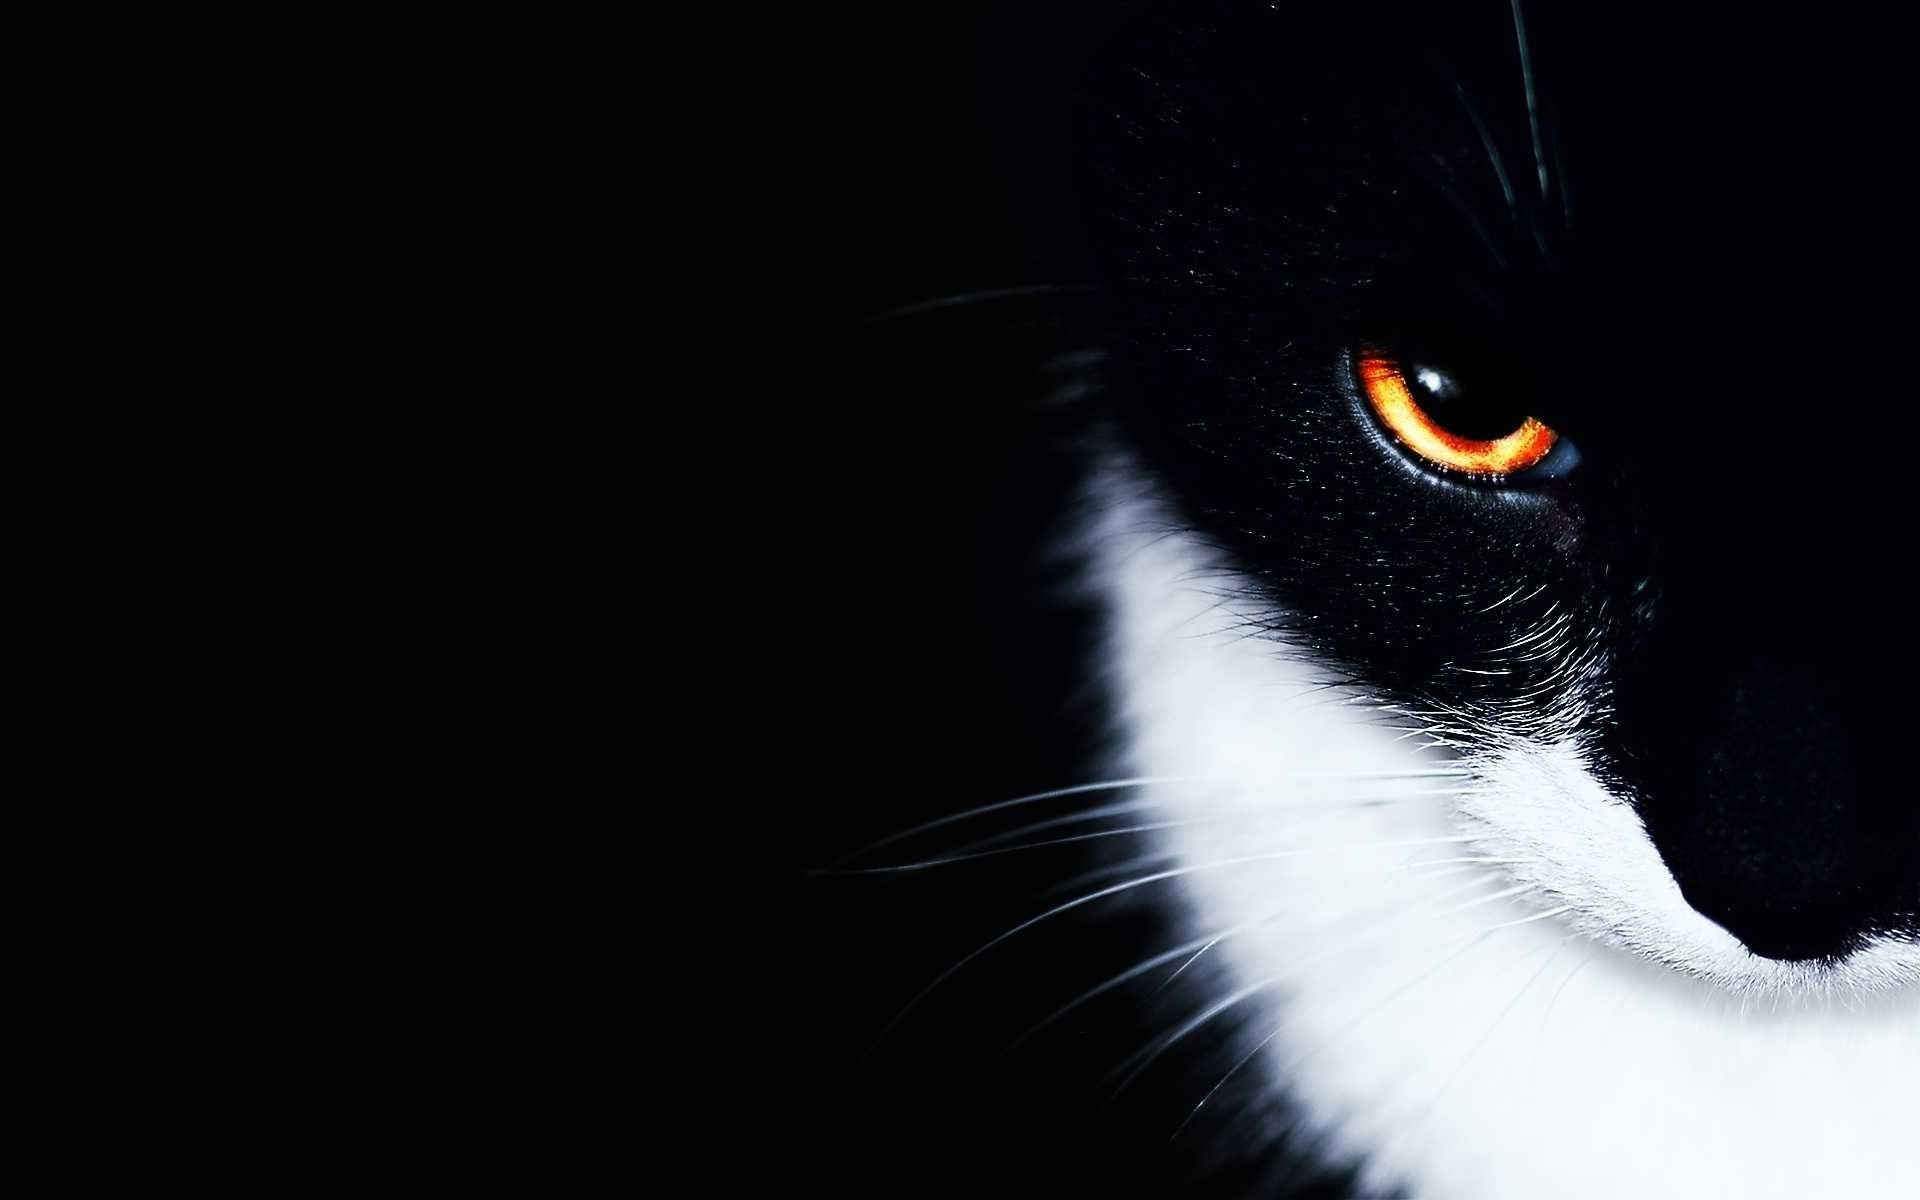 Black And White Cat Wallpapers   Wallpaper Cave Black And White Cat Wallpaper   Amazon Walls